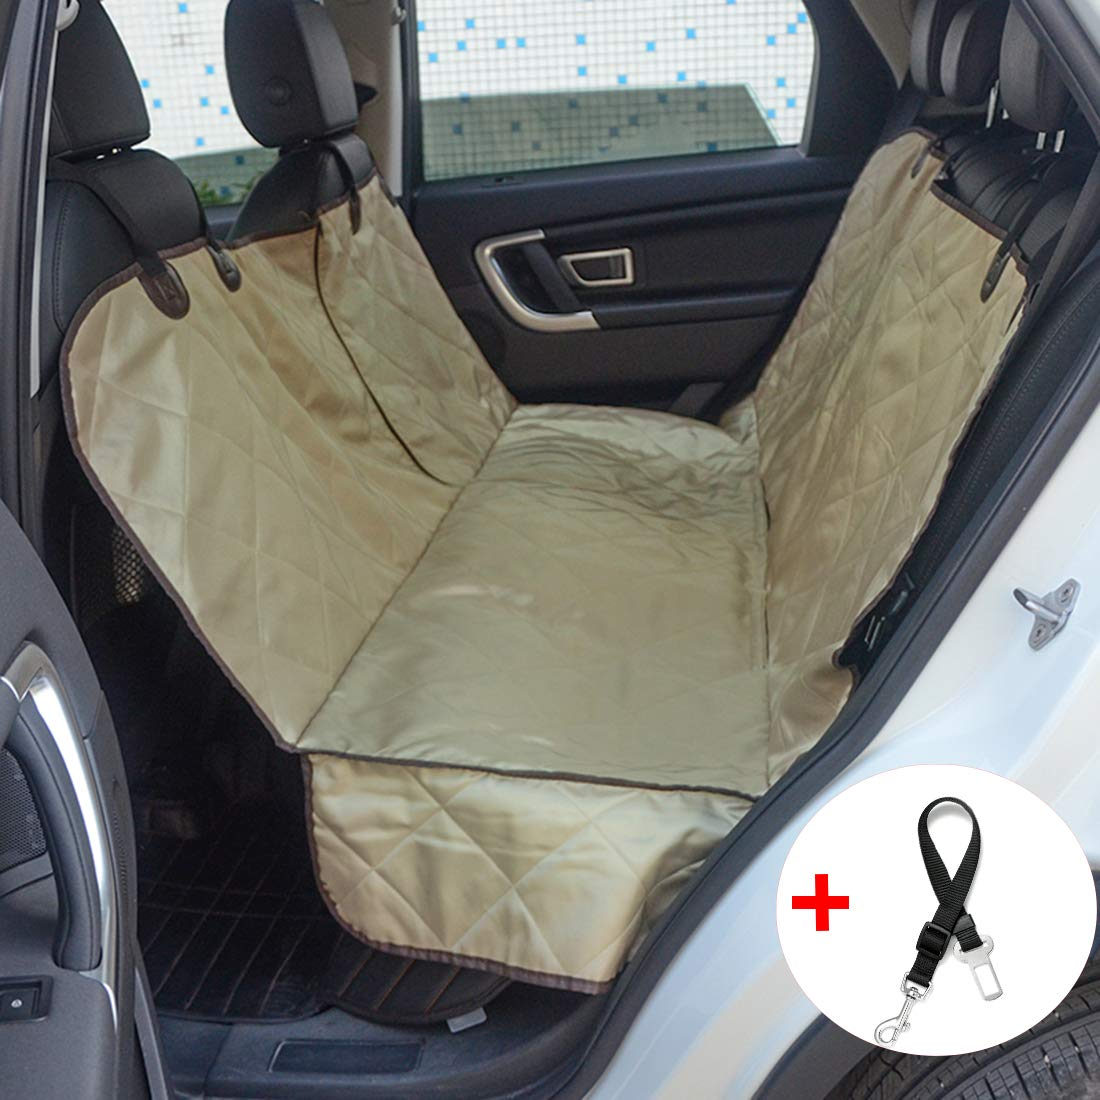 FLR Pet Seat Cover for Car Waterproof Washable Dog Backseat Cover Car Pet Dog Predector Seat Cover with 1 Pcs Pet Seat Safety Belt for Dogs SUV Cars Trucks